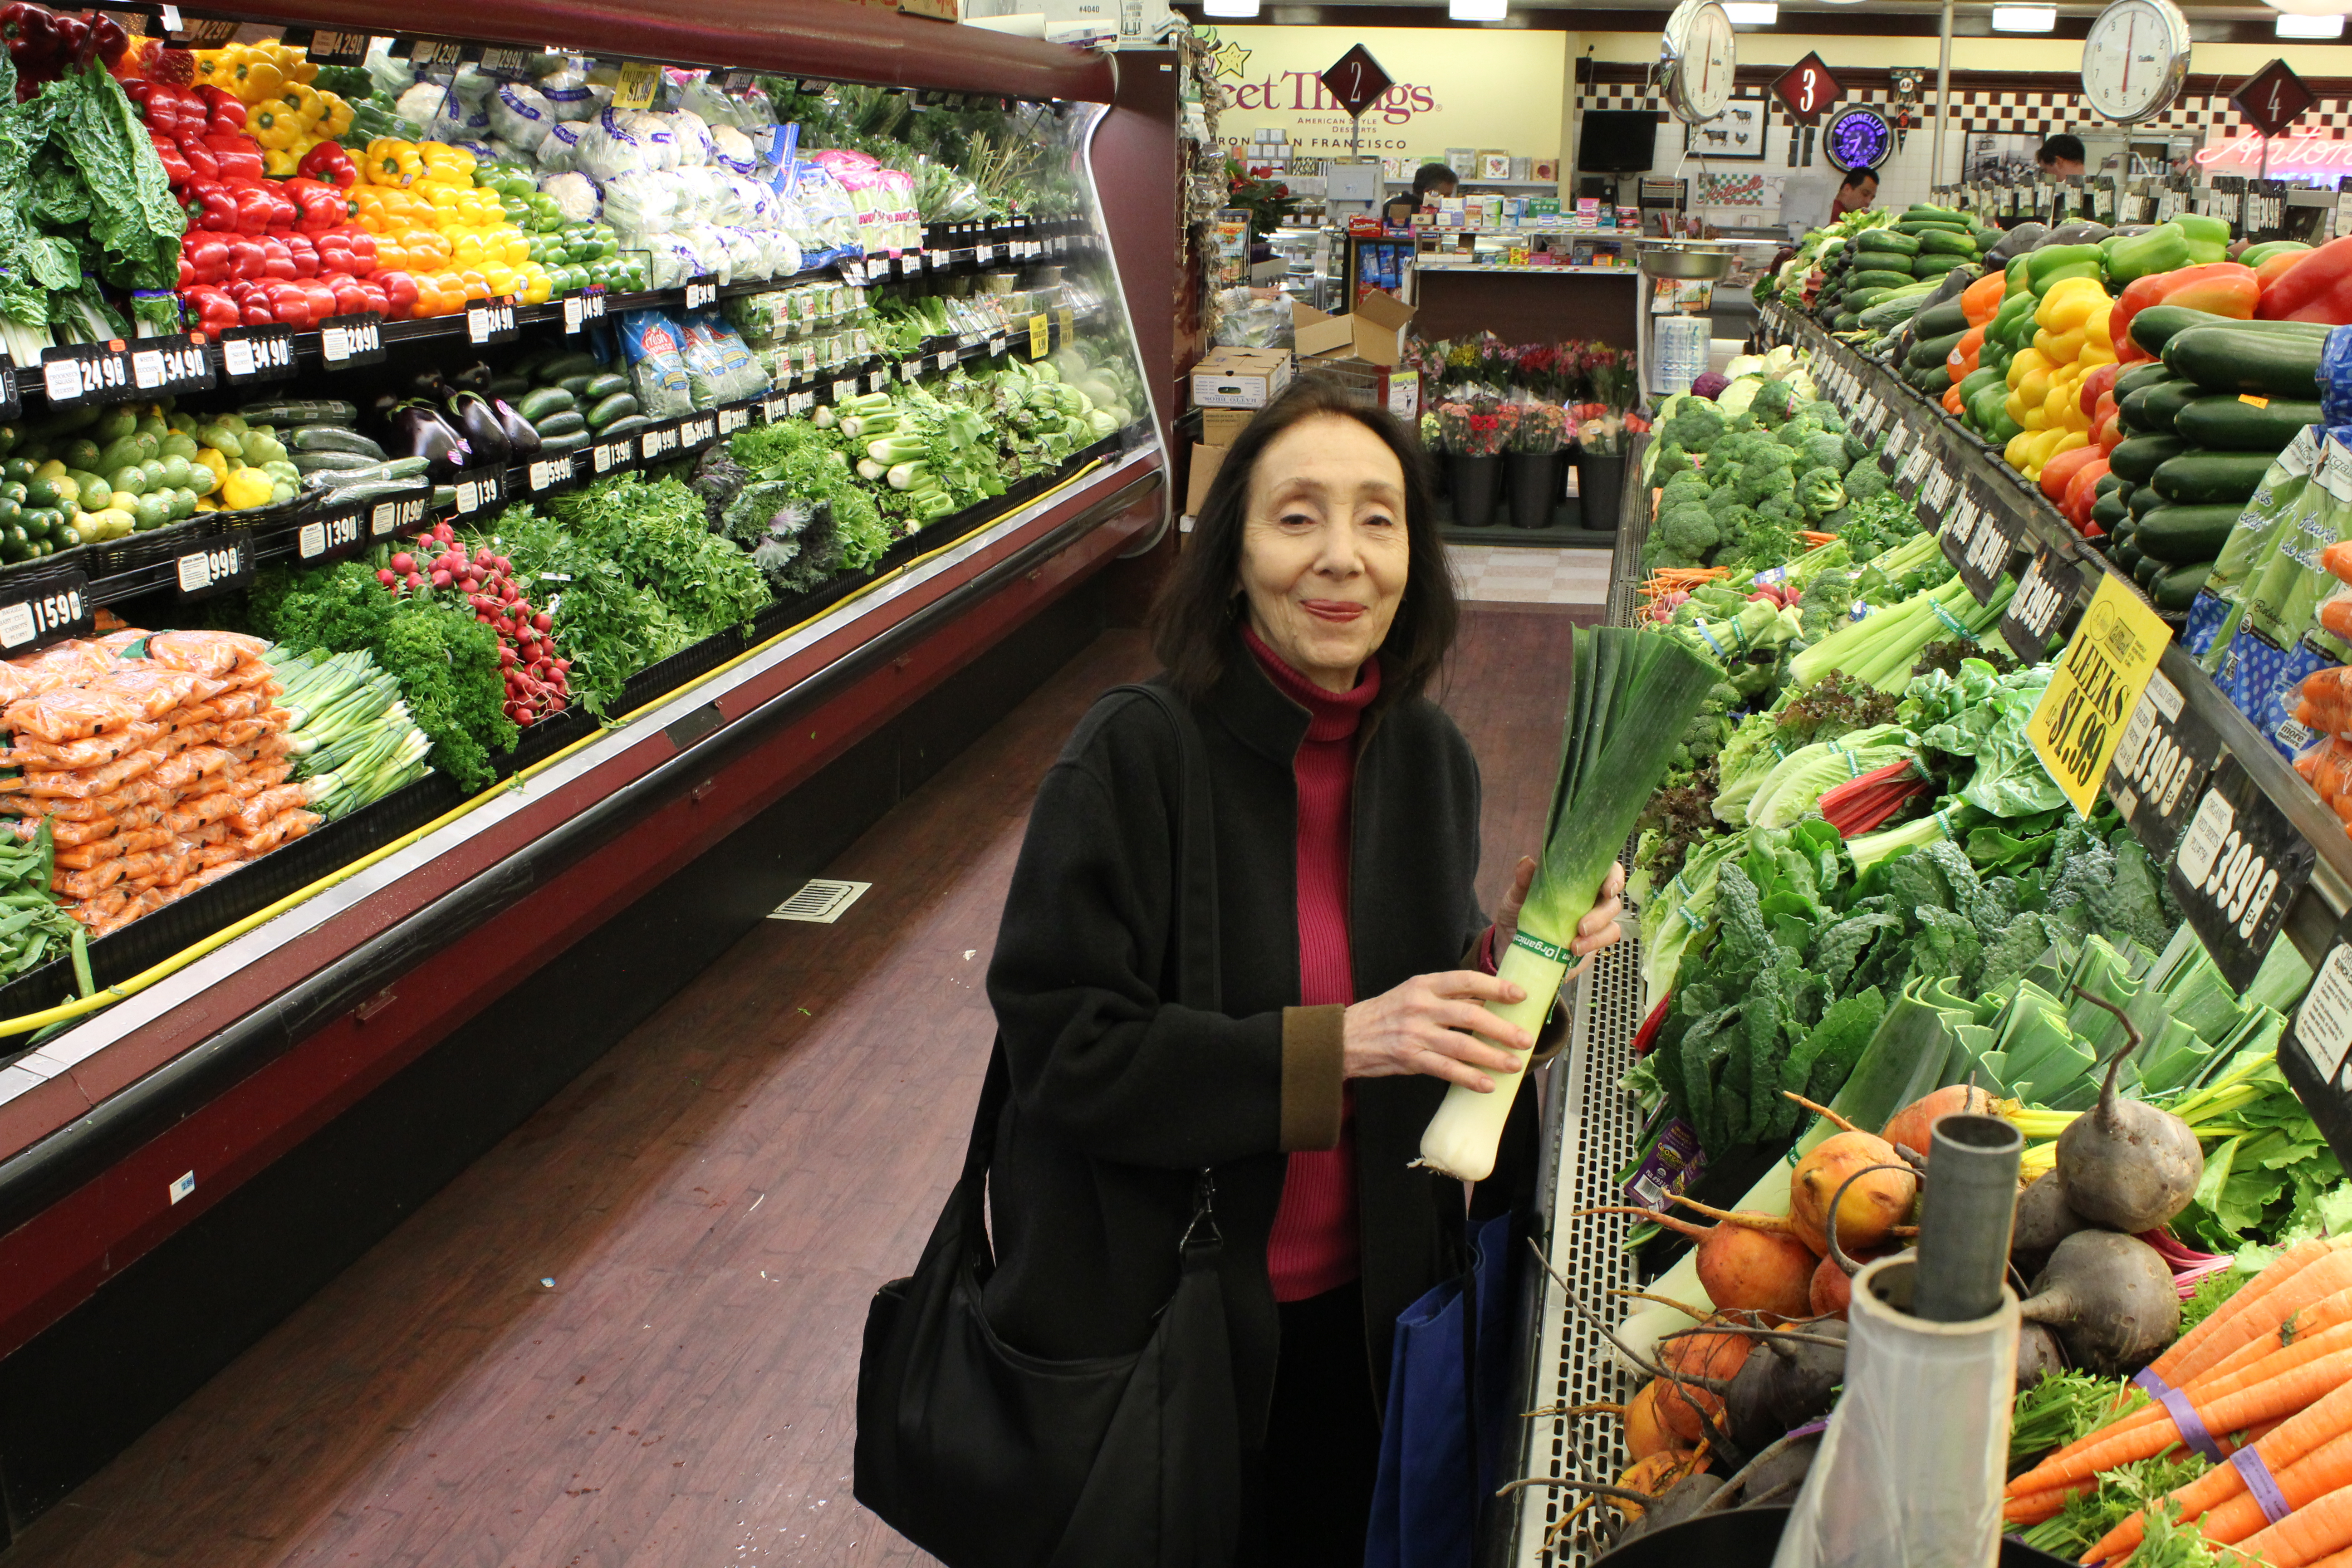 Local chef and author Joyce Goldstein selects fresh vegetables for her holiday menu. (Photo/David A.M. Wilensky)